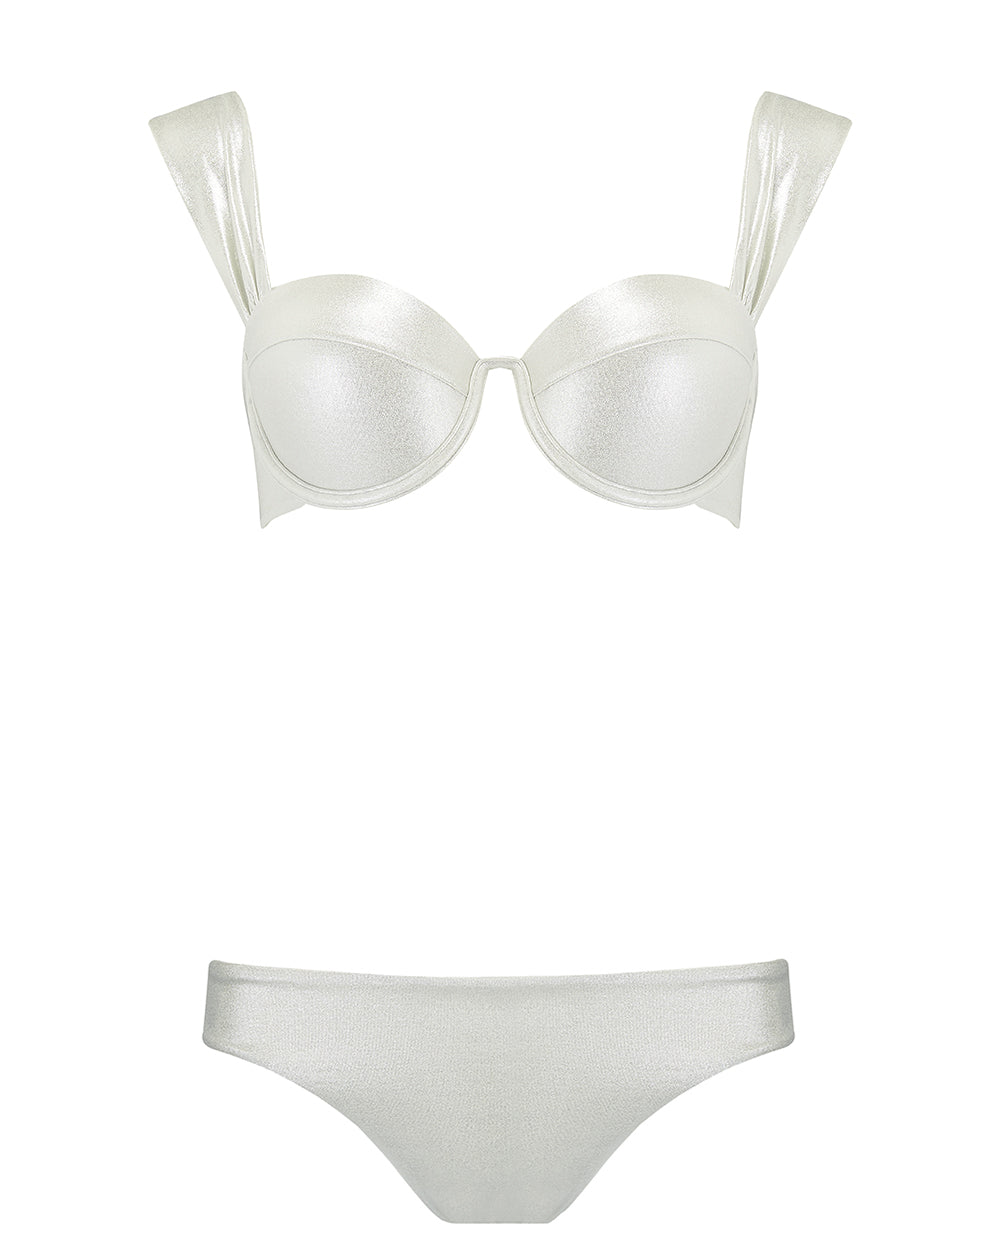 The Modern Bustier Set - Silver Shimmer